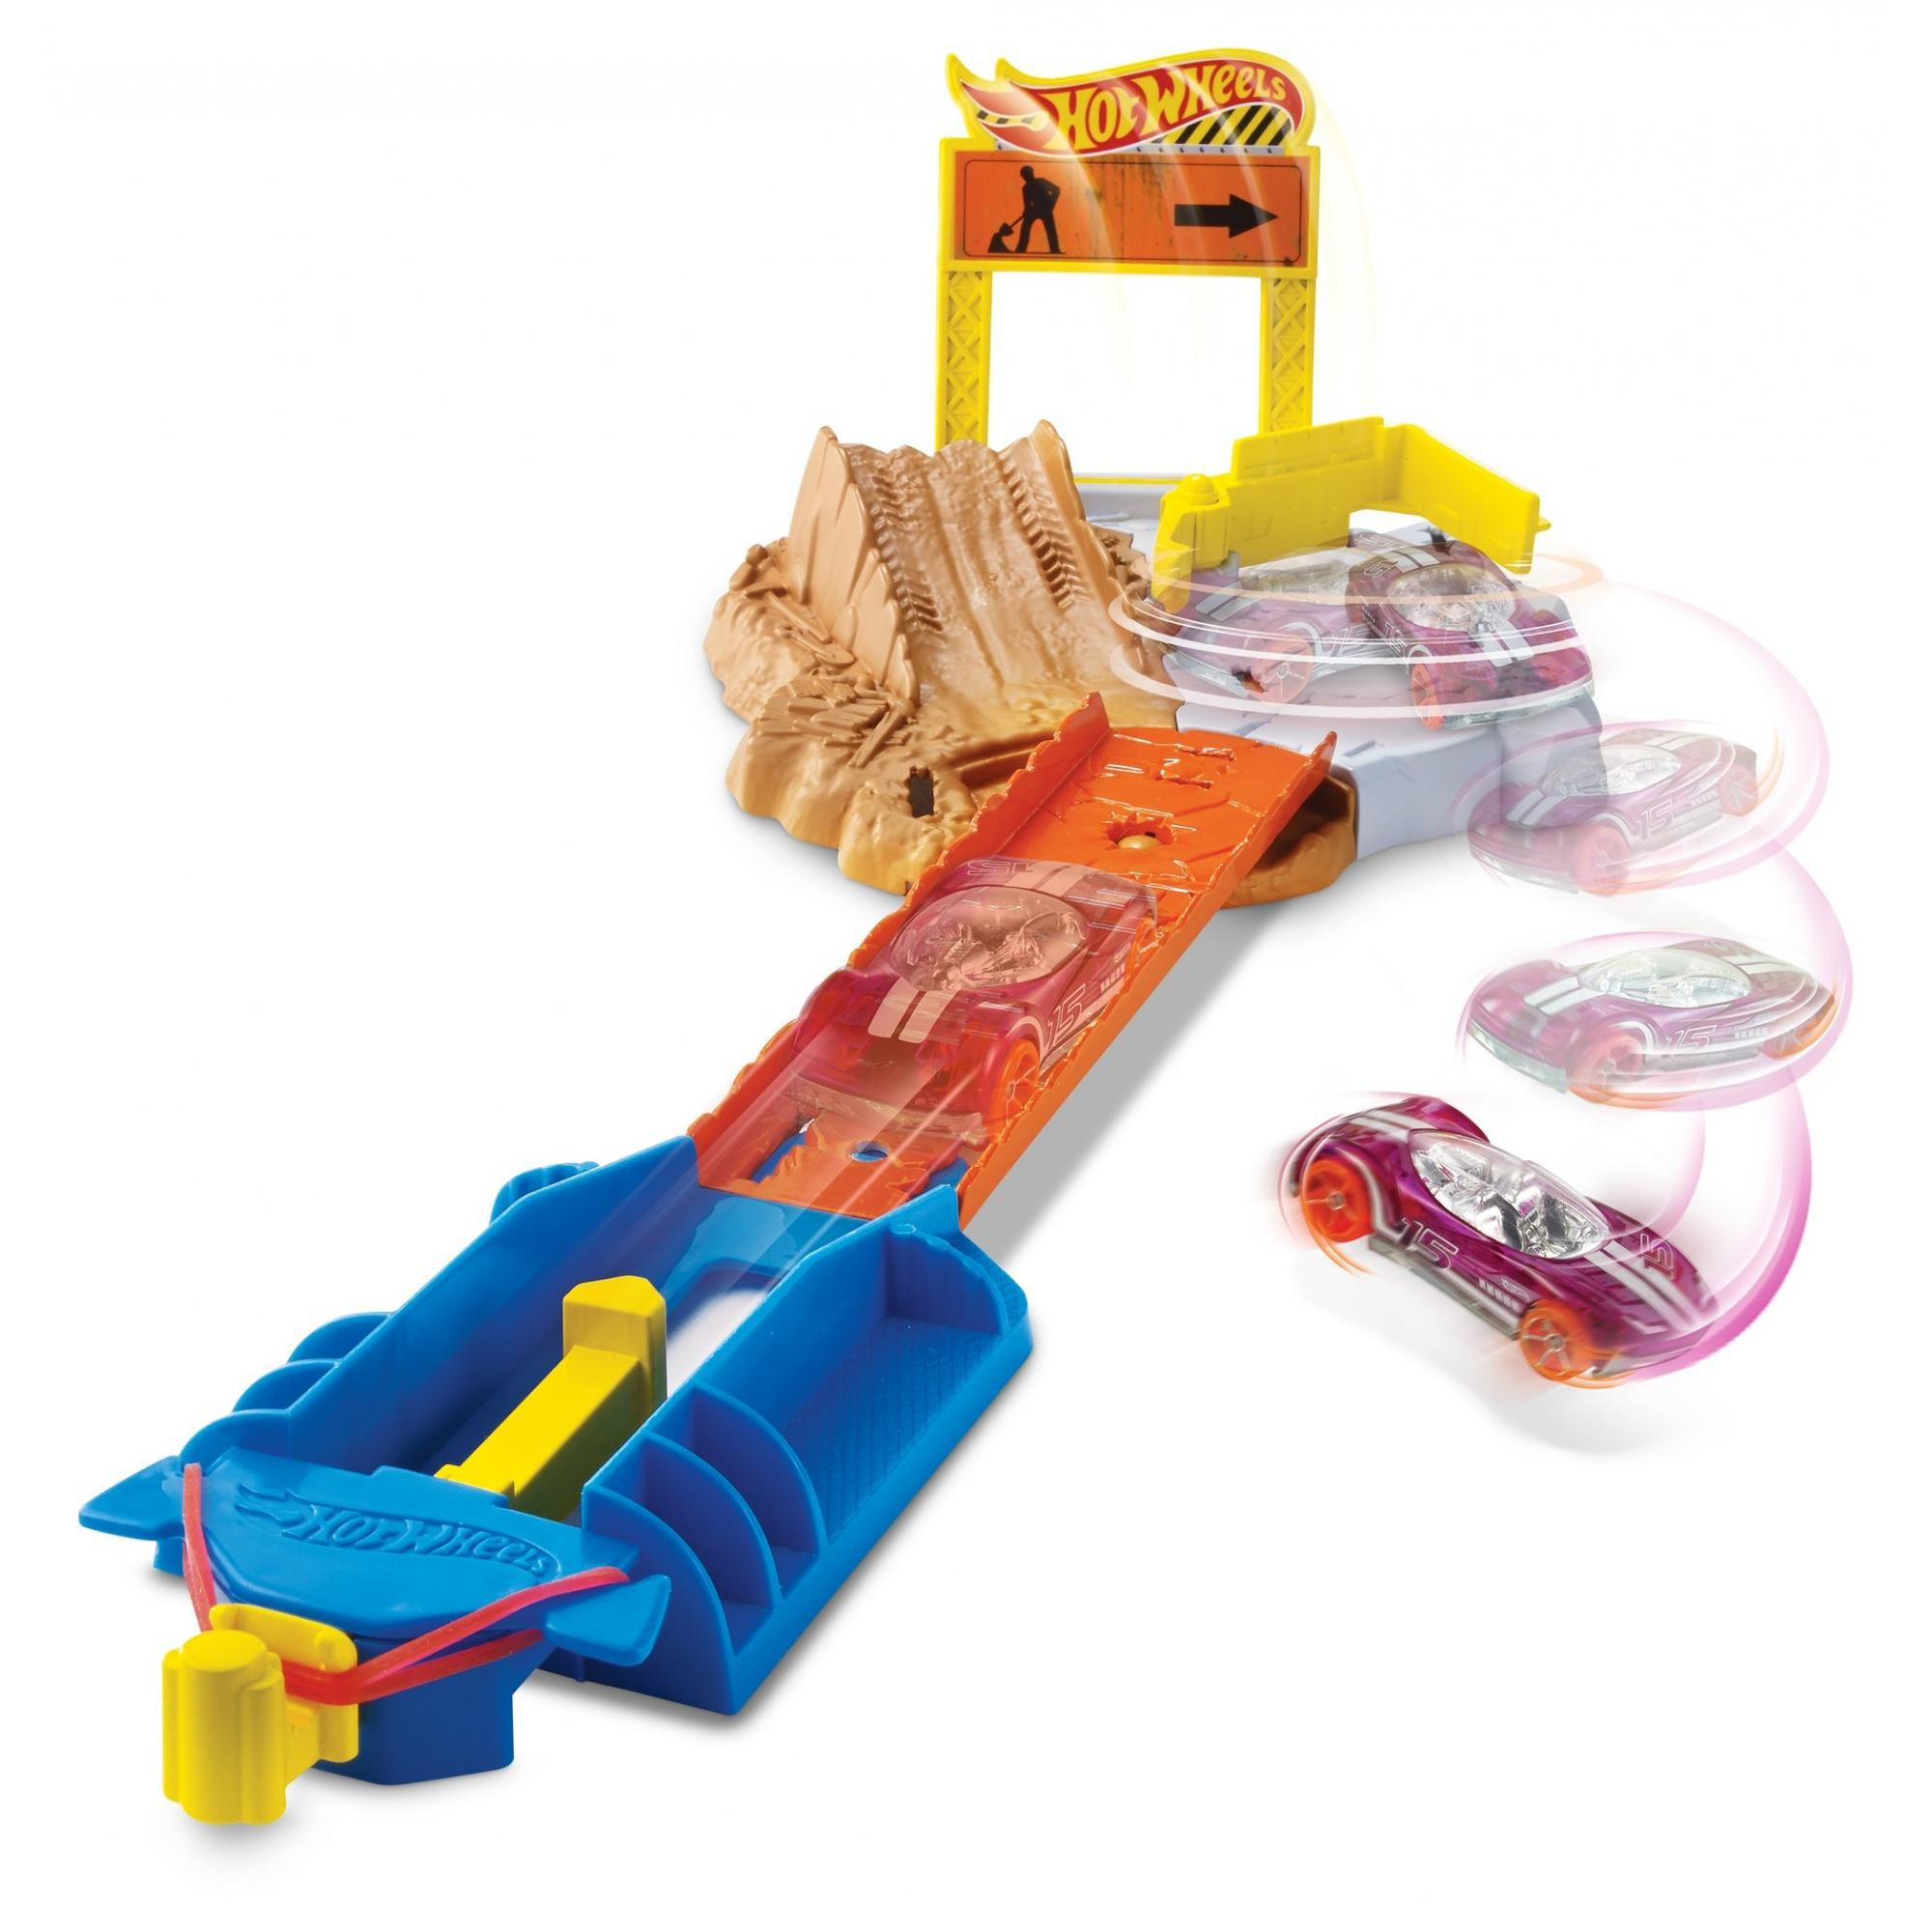 Hot Wheels Pocket Raceway by Mattel